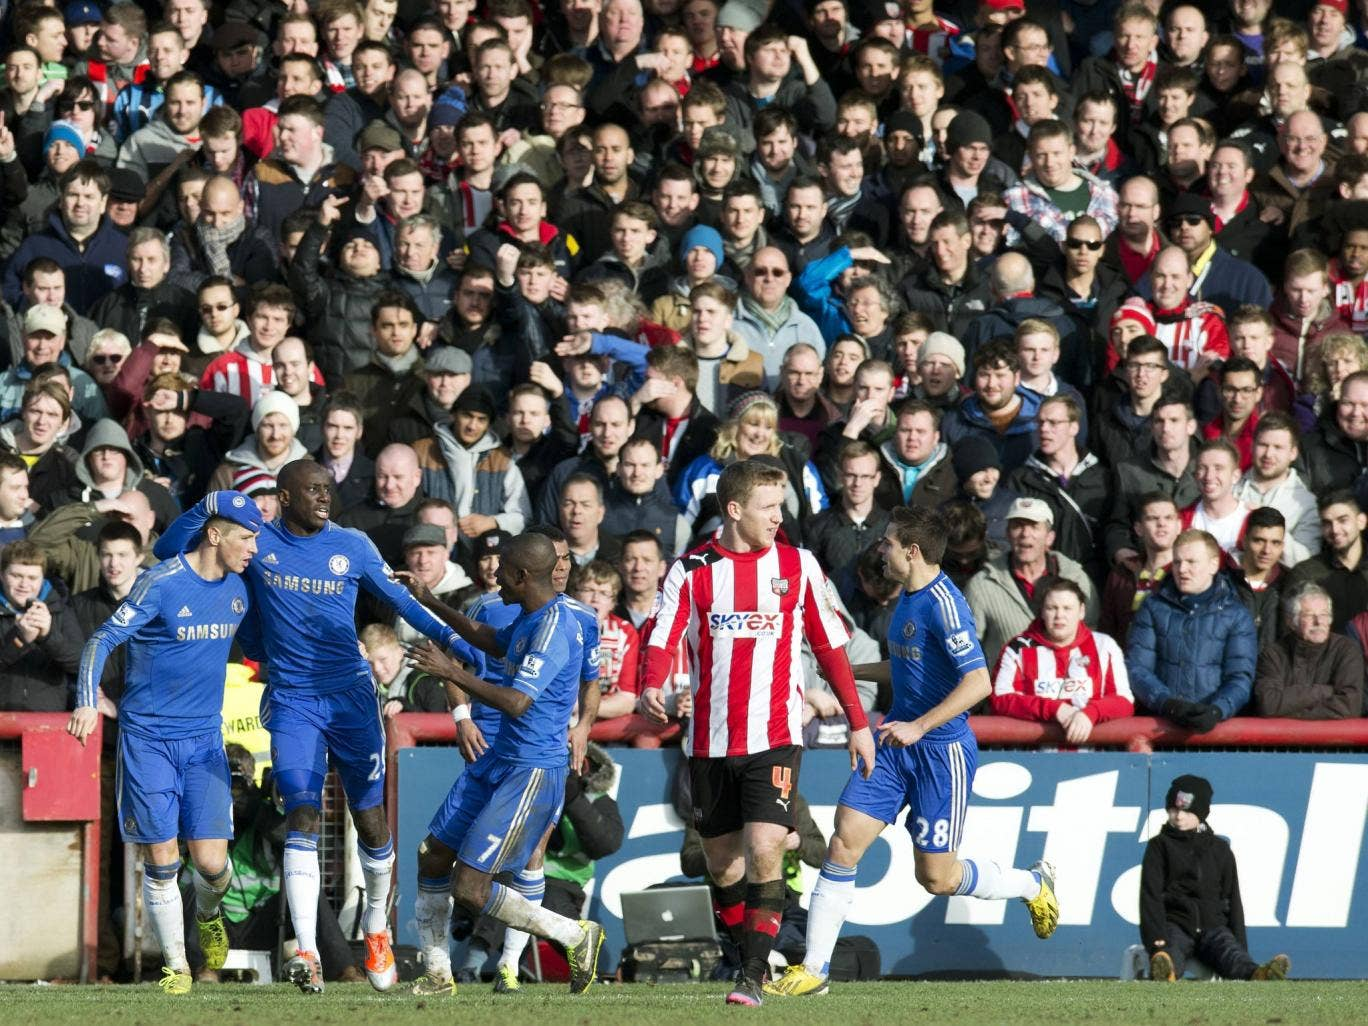 Chelsea striker Fernando Torres is congratulated for scoring in the 2-2 draw with Brentford